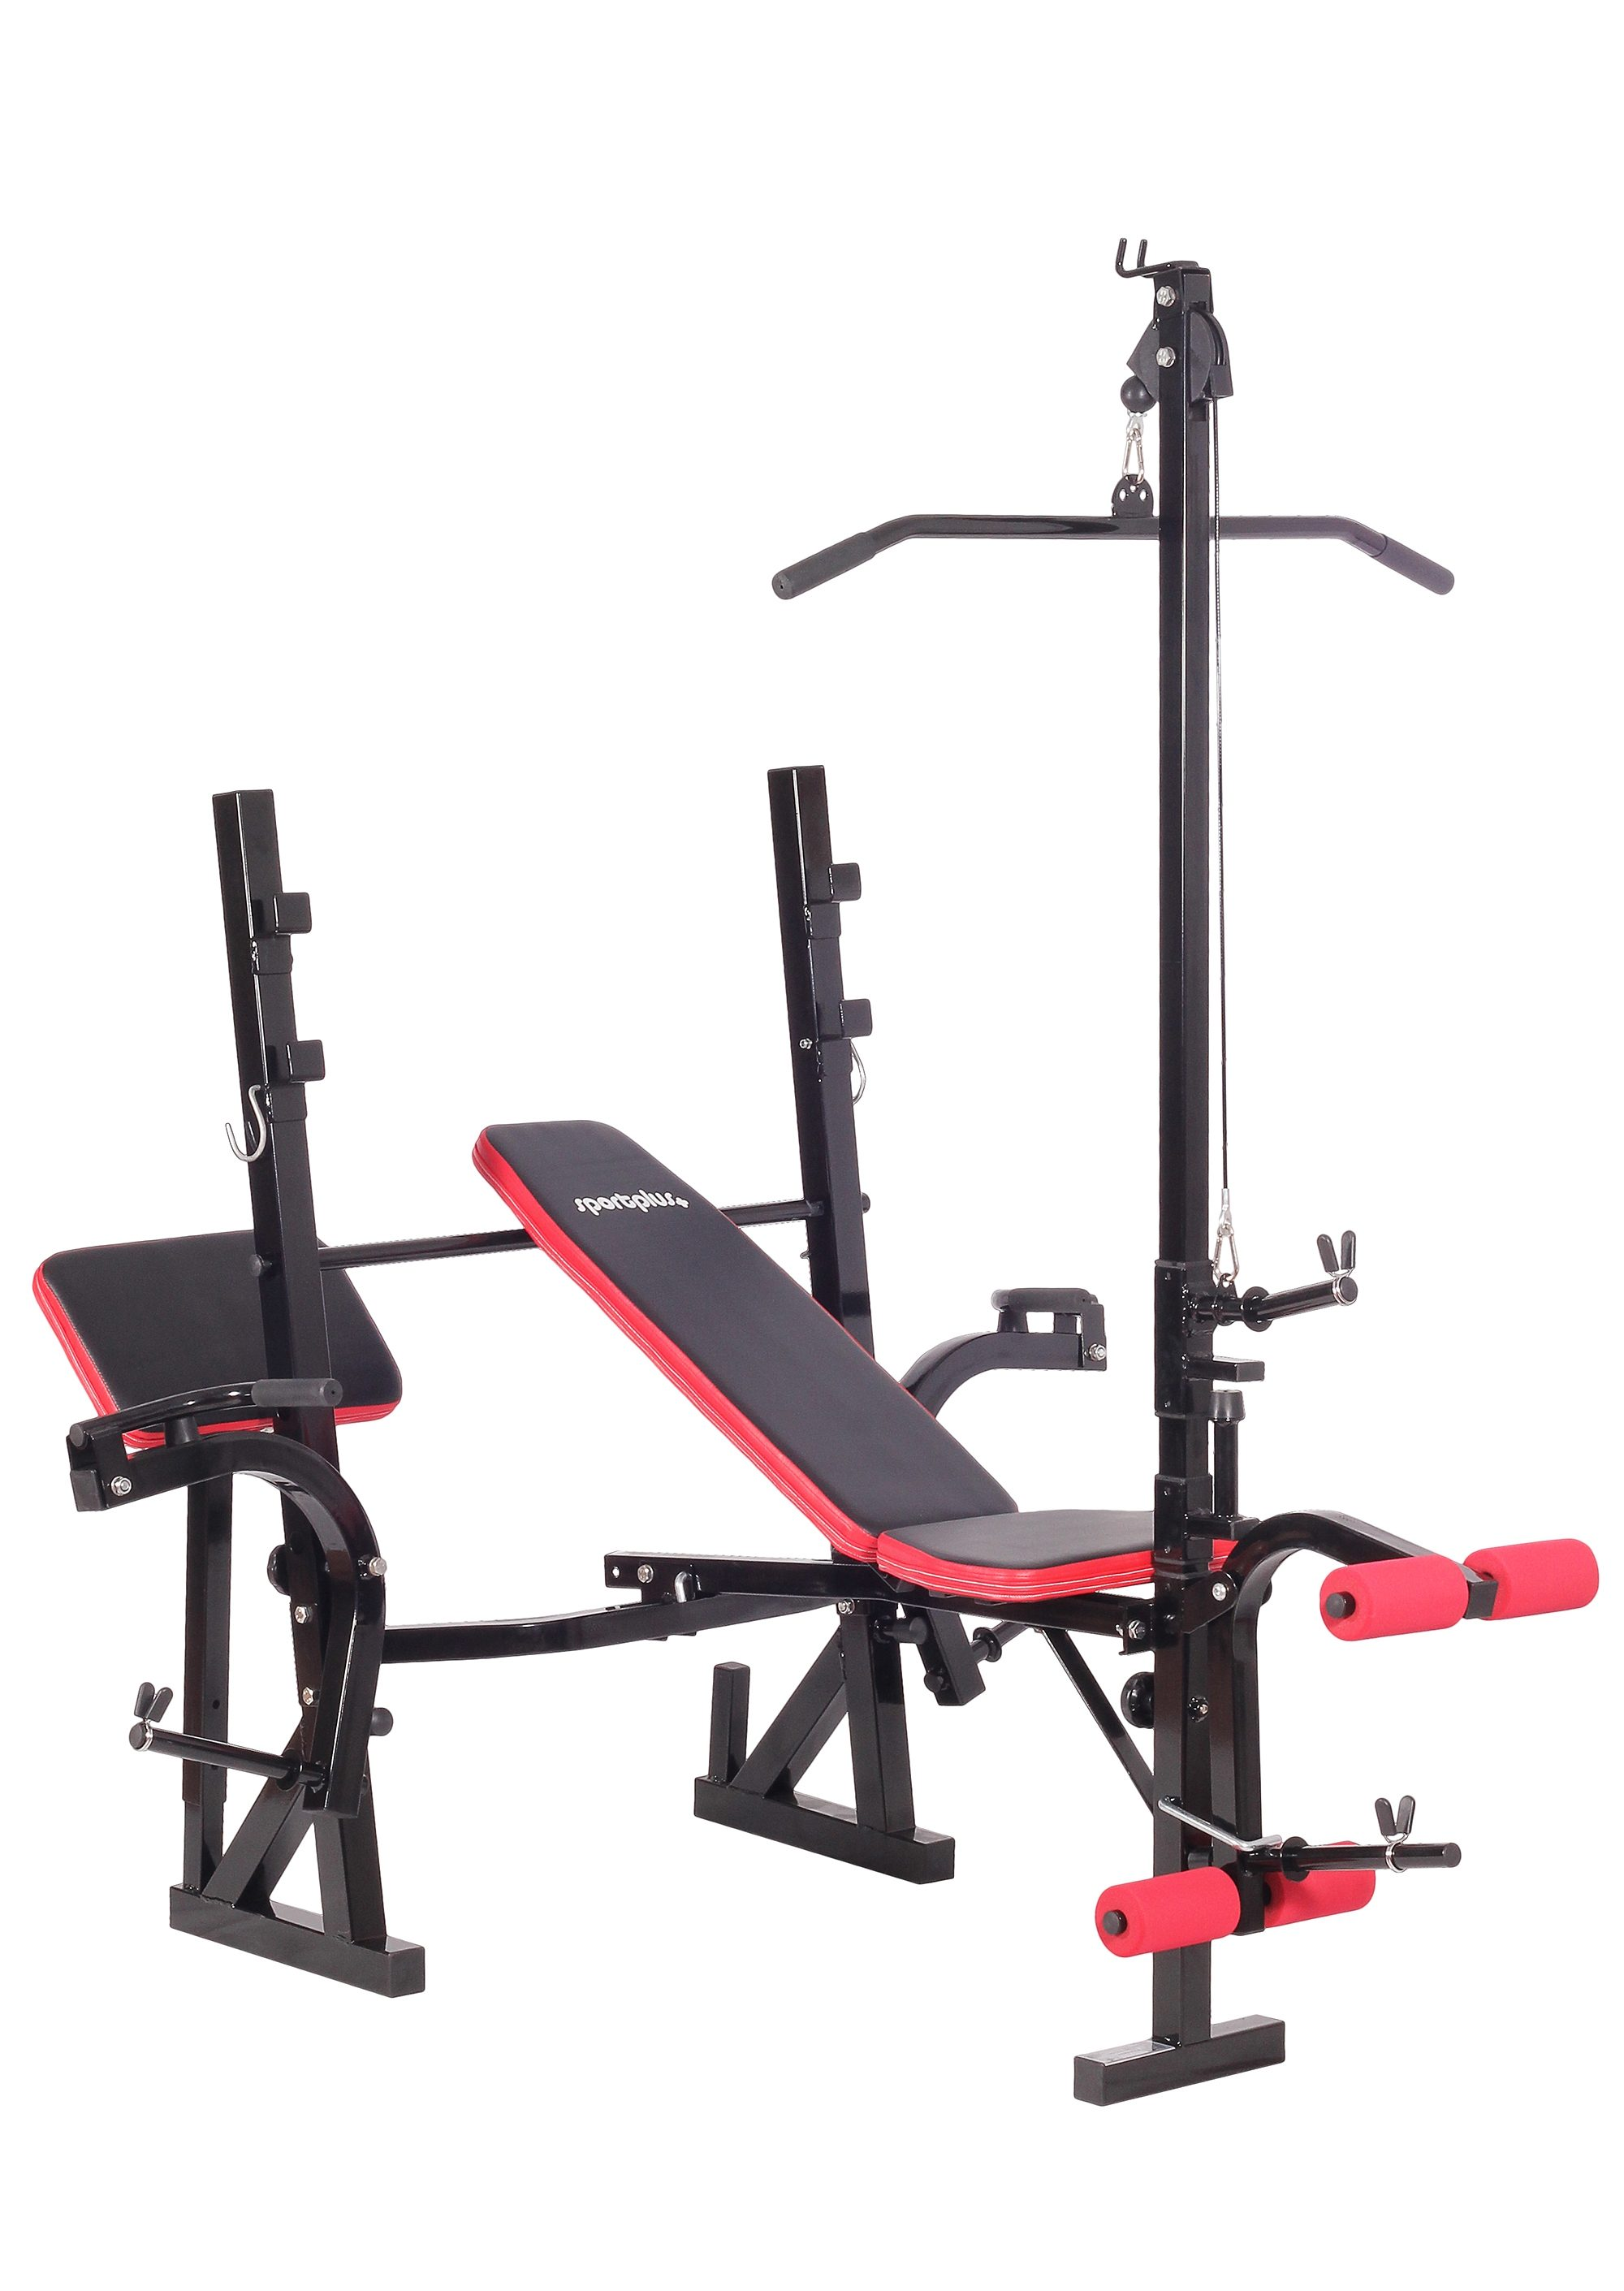 Hantelbank, »Weight Bench SP-WB-005-B«, Sportplus